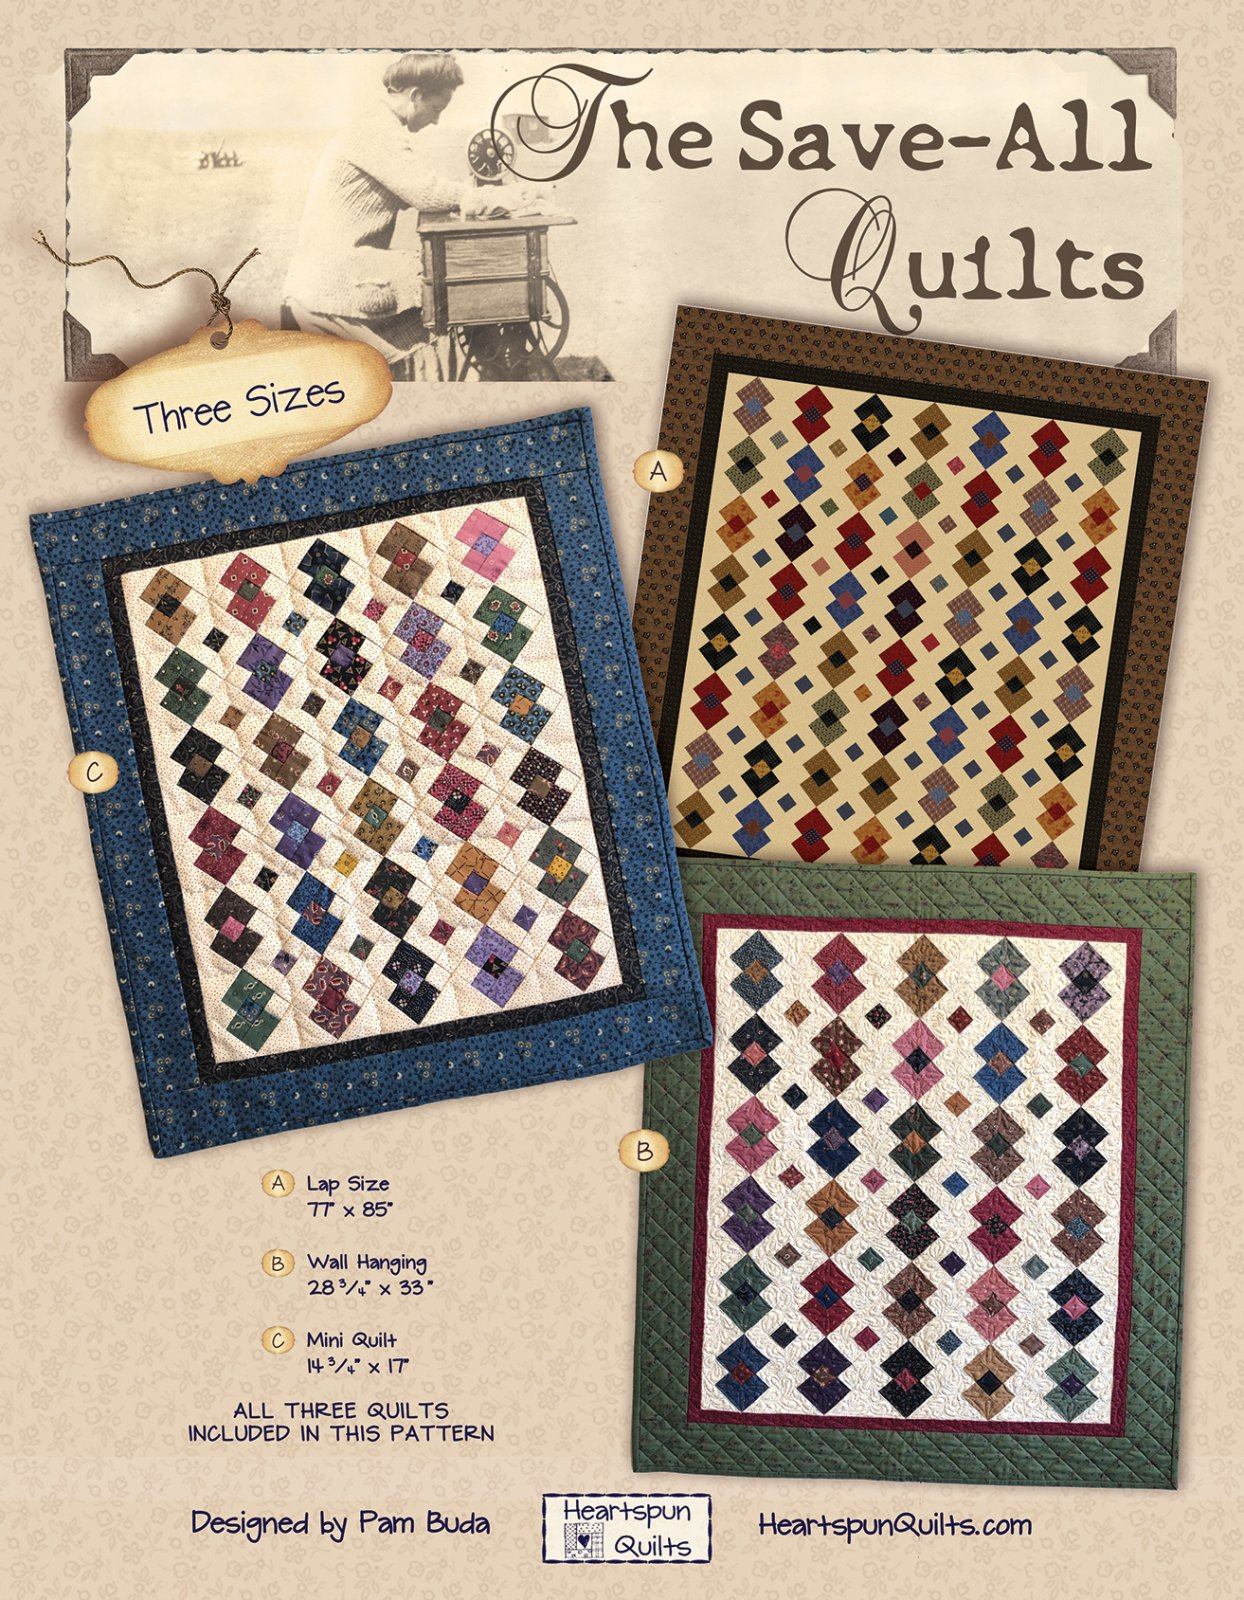 The Save-All Quilts Pattern